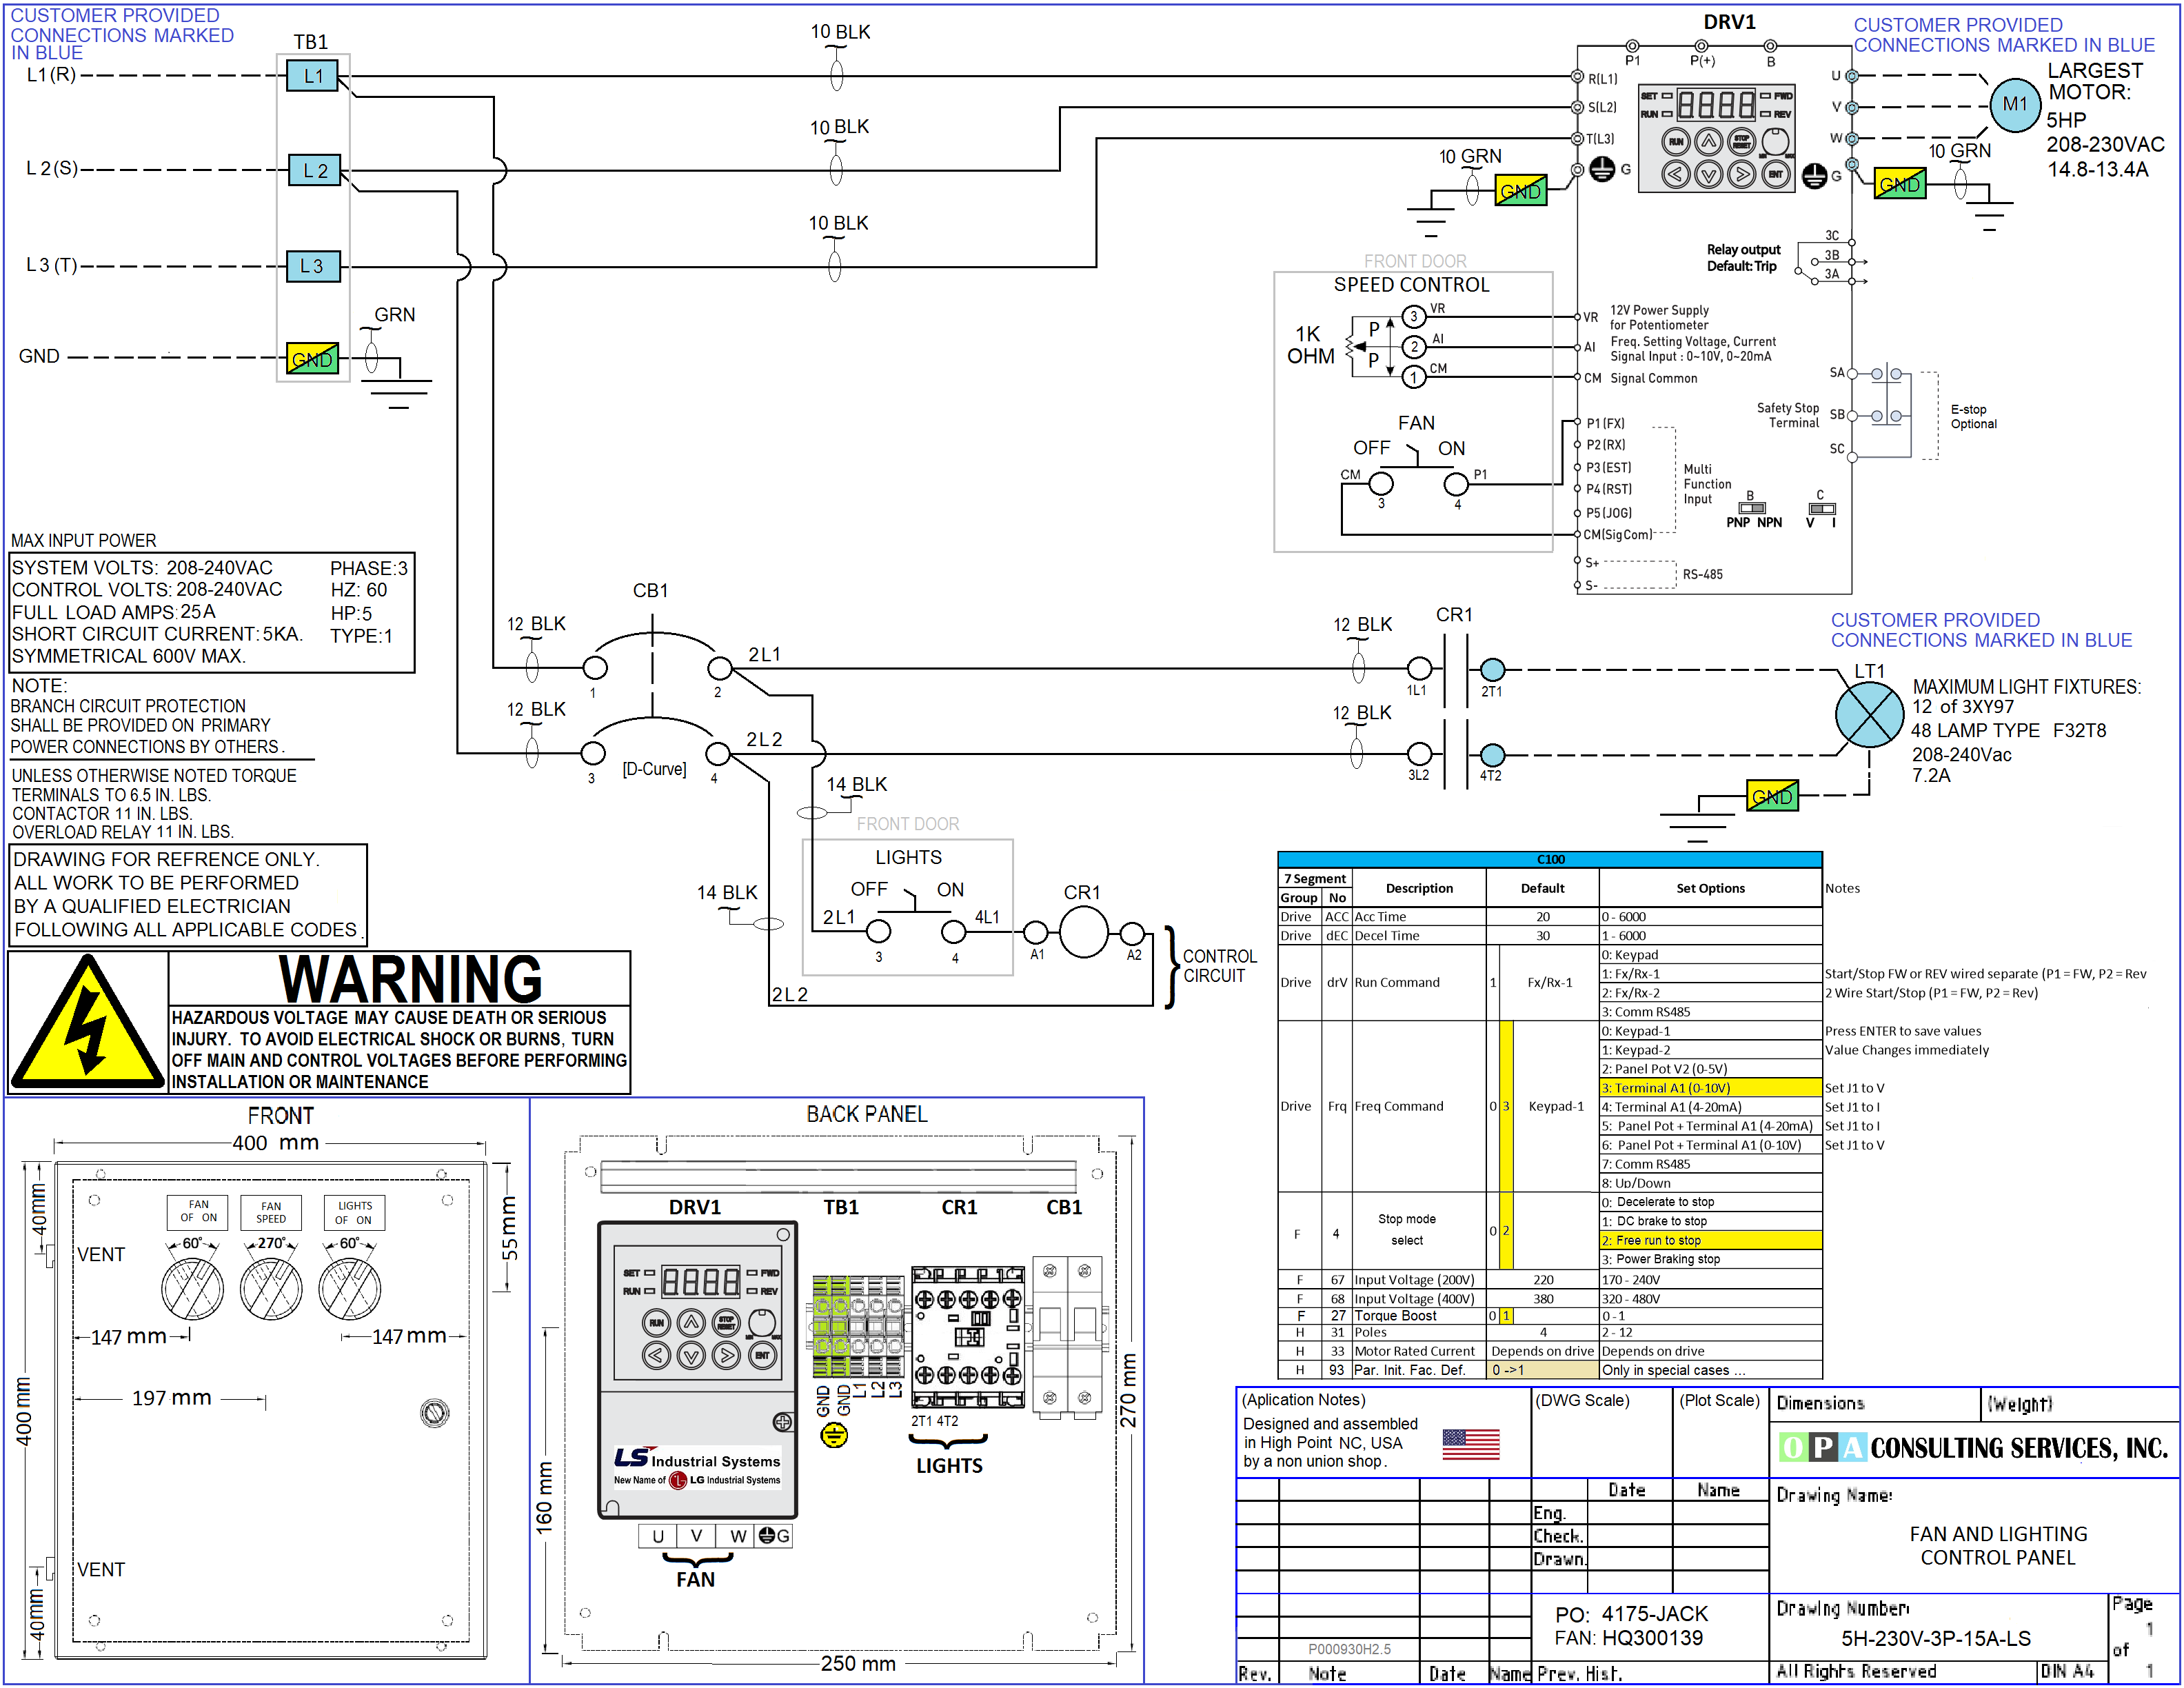 Paint Booth VFD Control Panel Drawing ... Free to Download